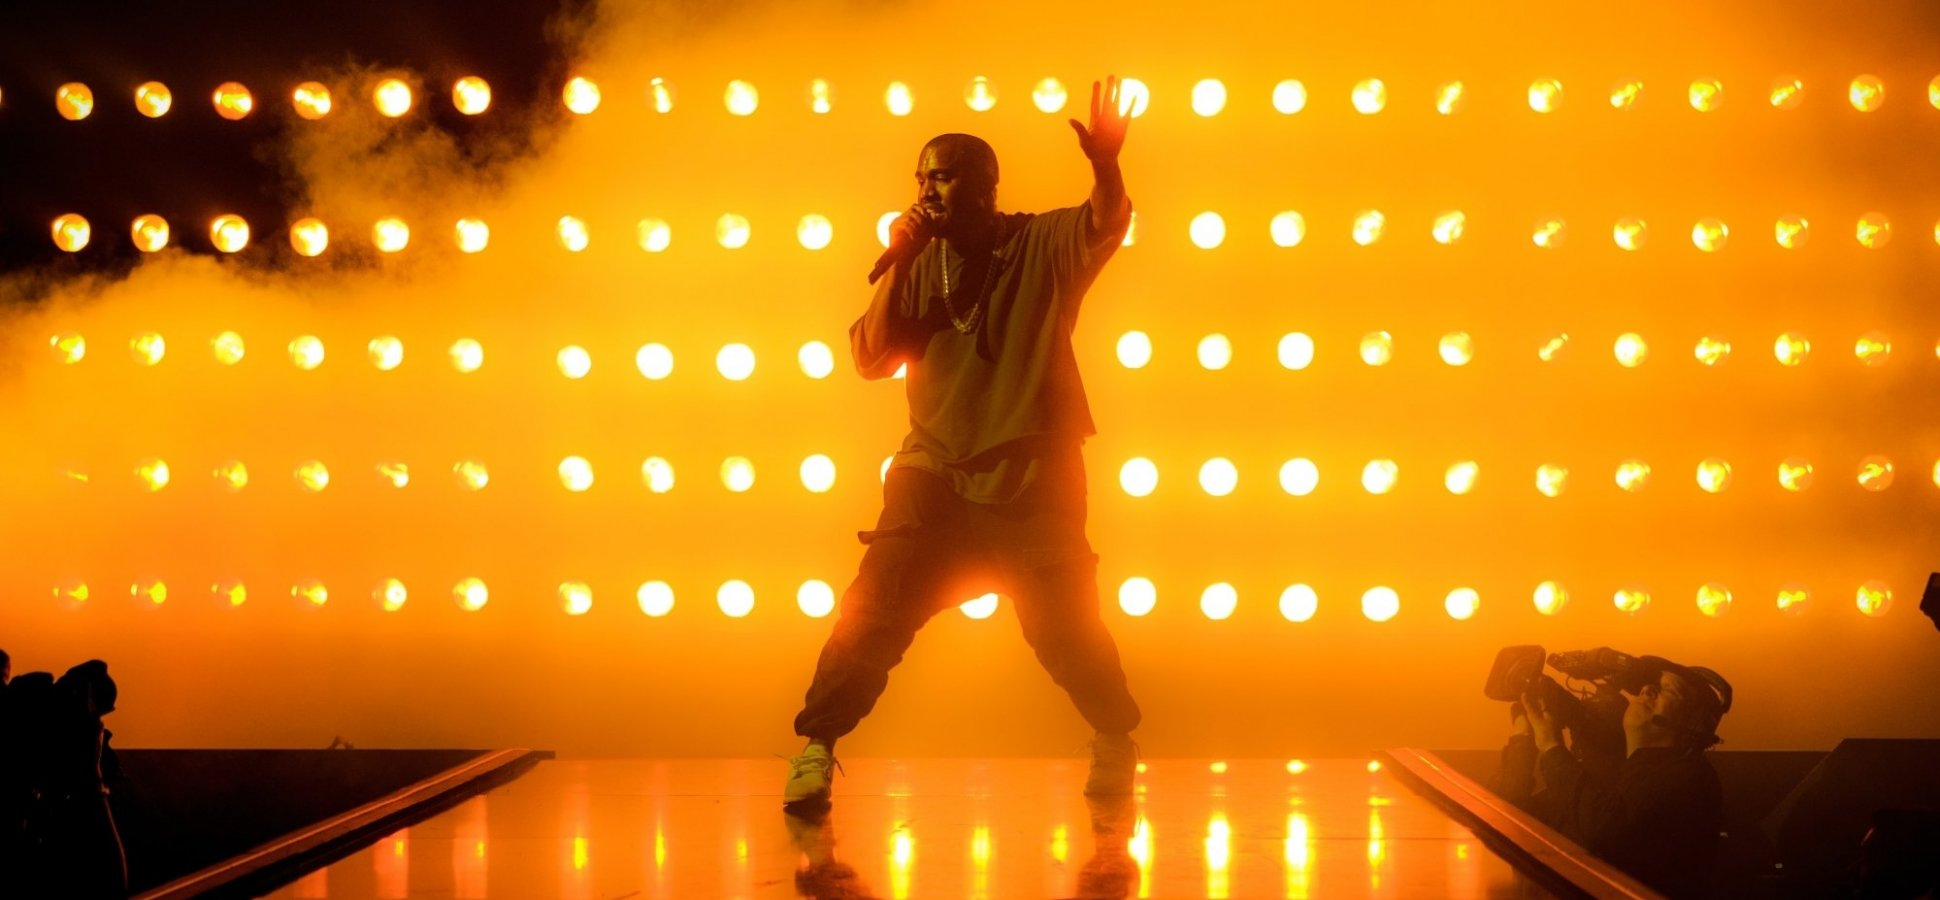 Kanye West Just Offered the Best Career Advice You'll Hear This Week